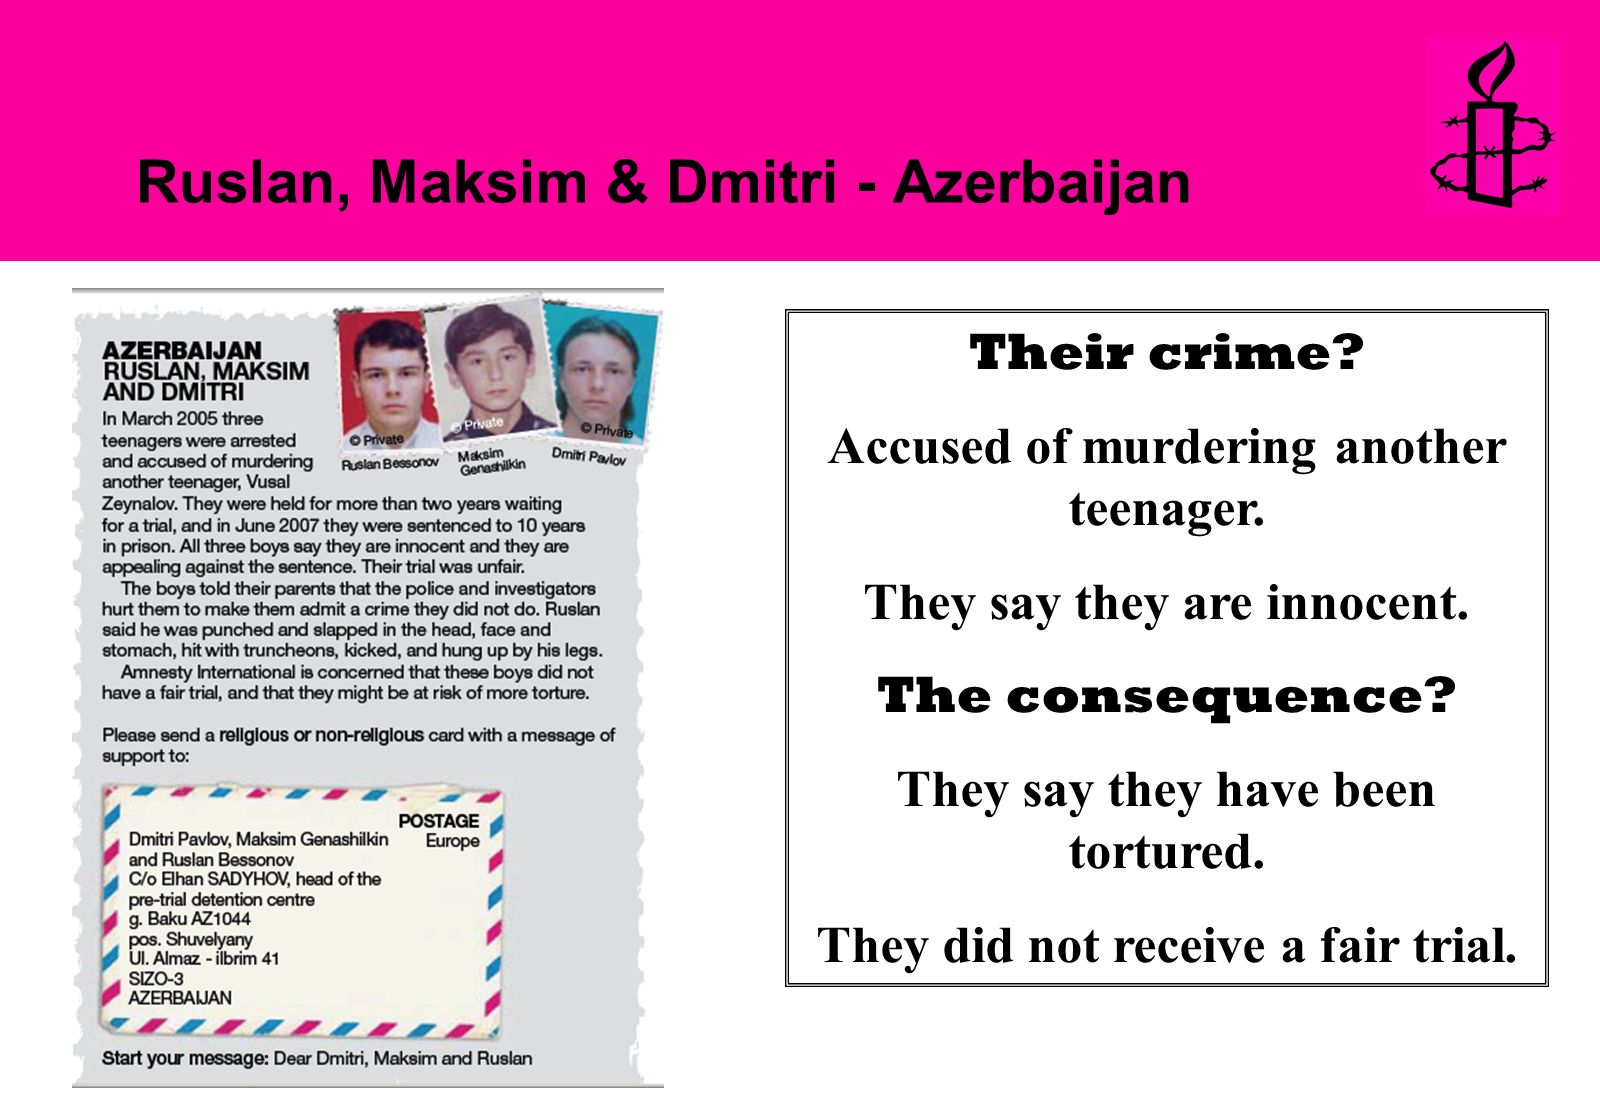 Ruslan, Maksim & Dmitri - Azerbaijan Their crime. Accused of murdering another teenager.